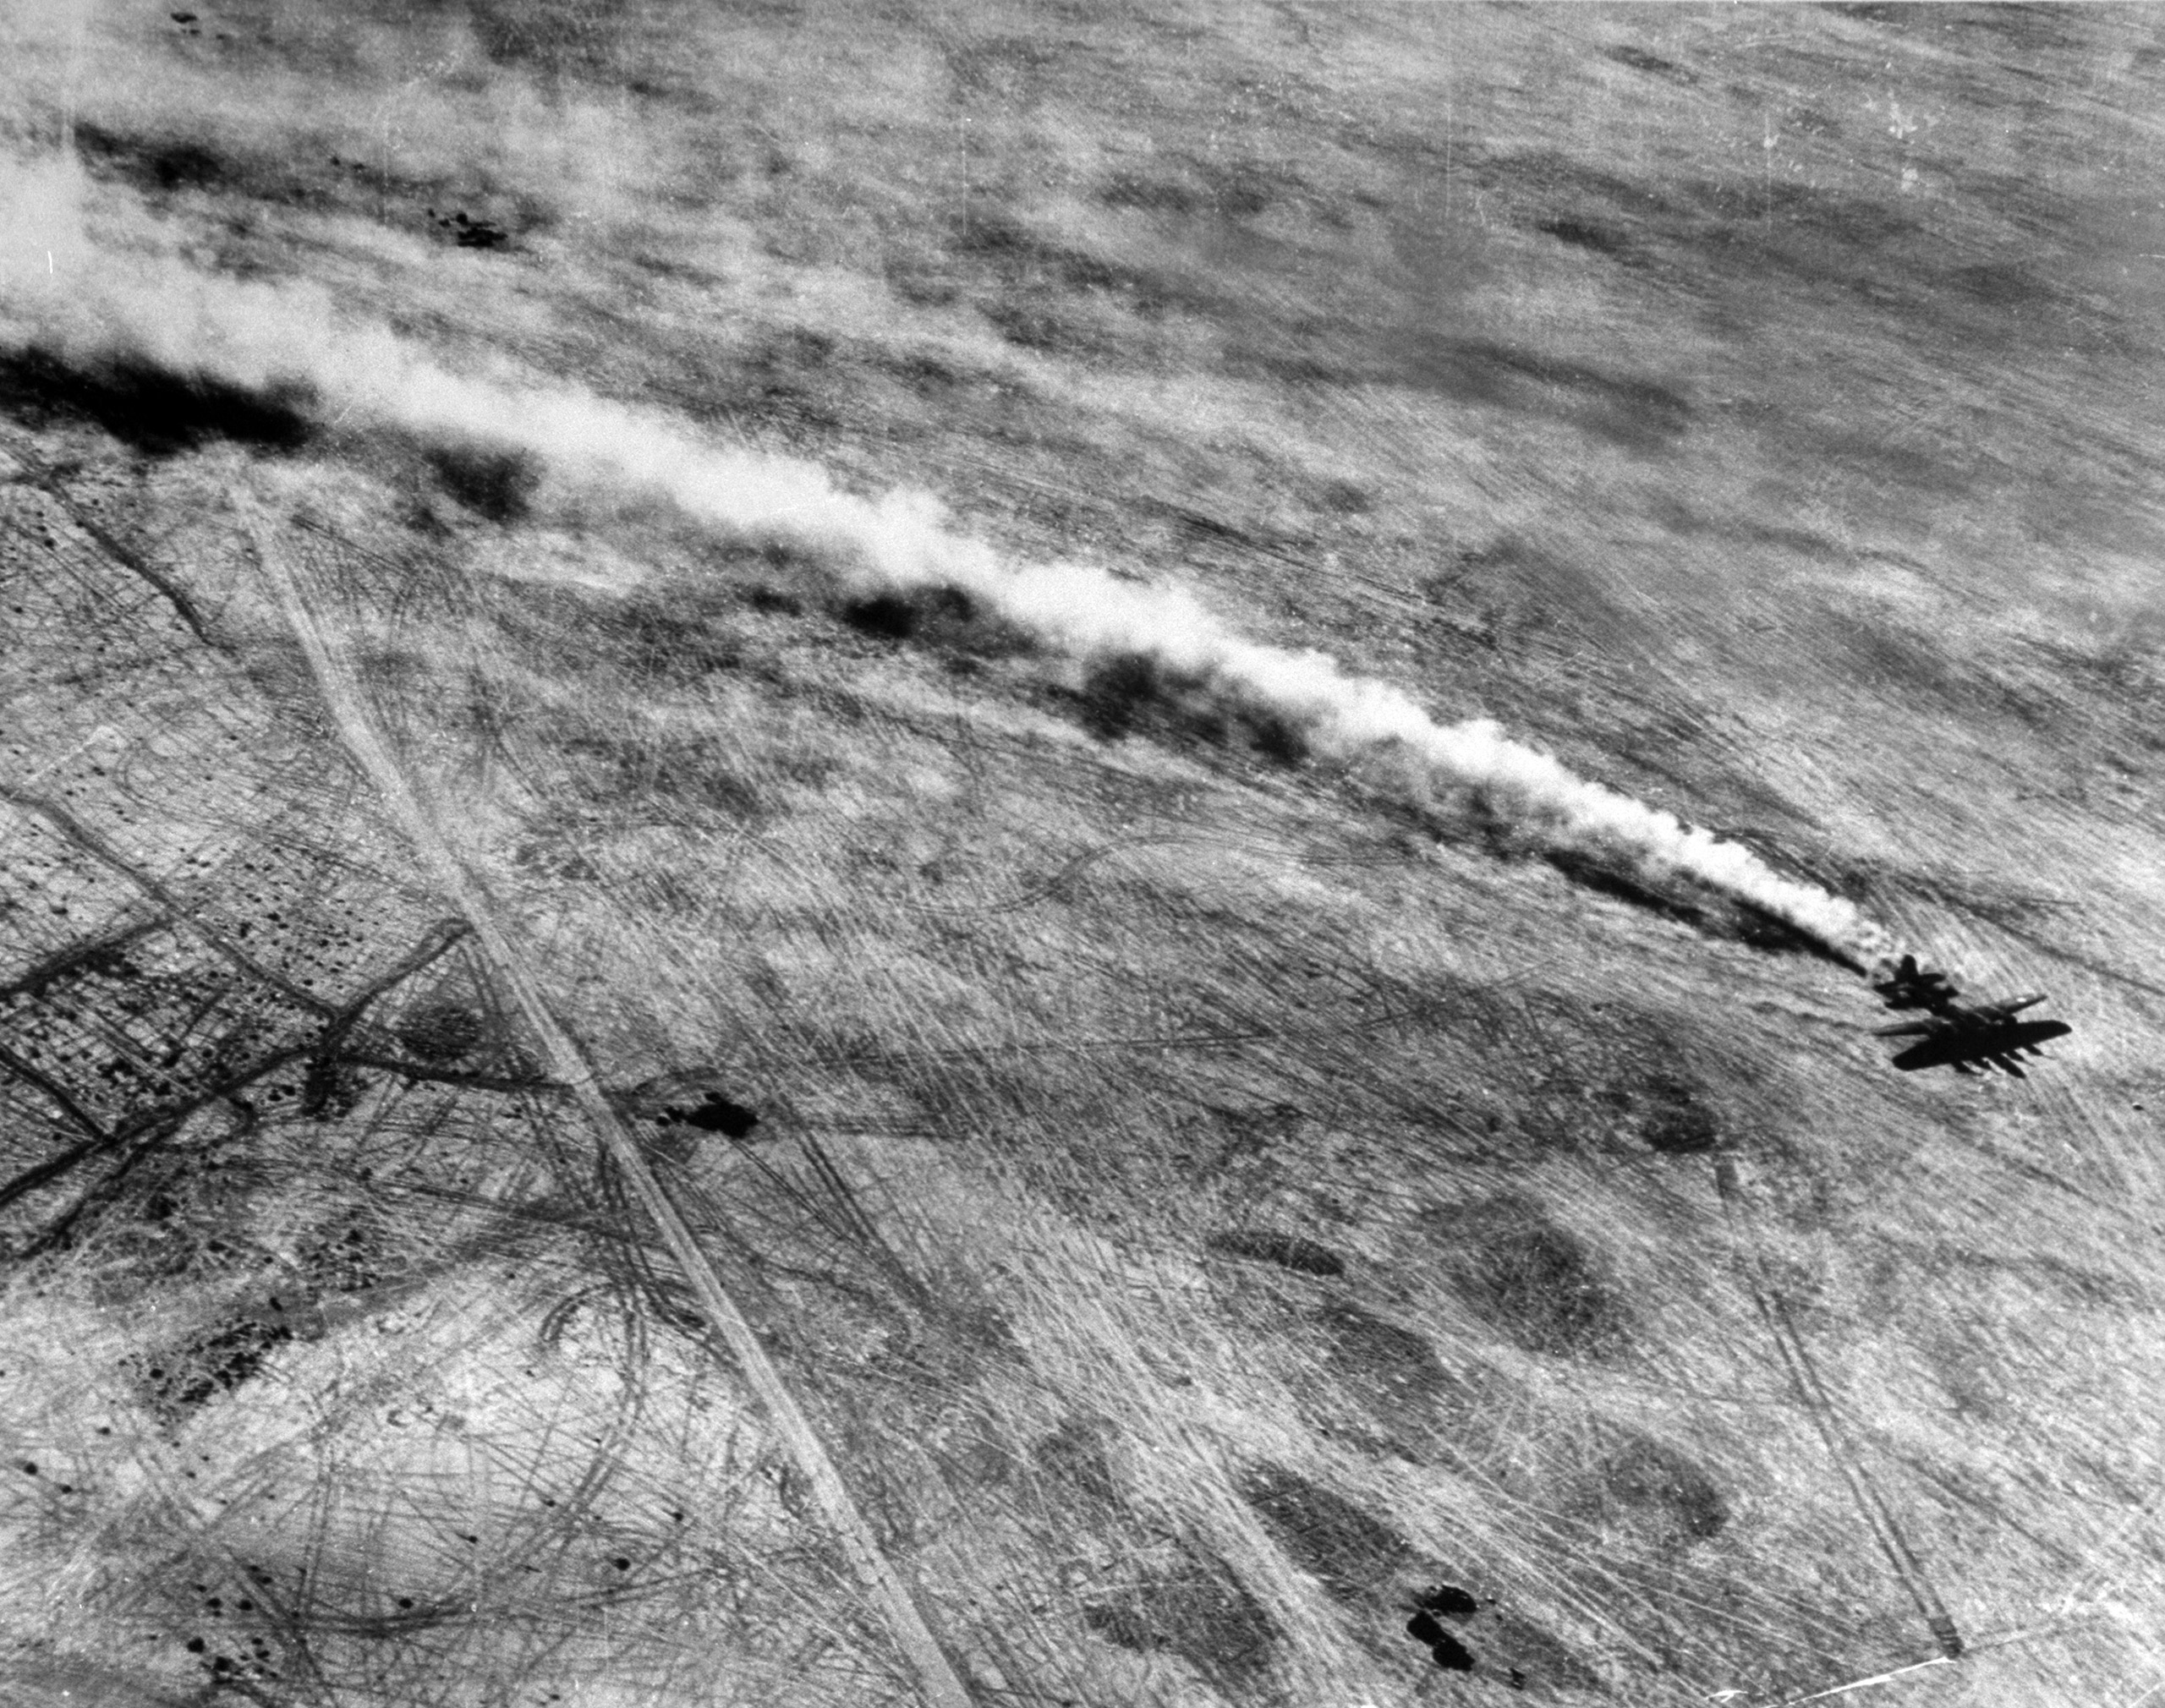 <b>Caption from LIFE.</b> The take-off is at 8:55 am. One by one Fortresses roar down the field, climb into the clear African sky, compose their elements and squadrons and head for Tunis. Noe sand streaming in wake of plane. In this desert post, sand is the insidious Axis agent that sabotages motors and spoils food. Few weeks ago, in fields nearer the coast, mud was the fliers' No. 1 gripe.